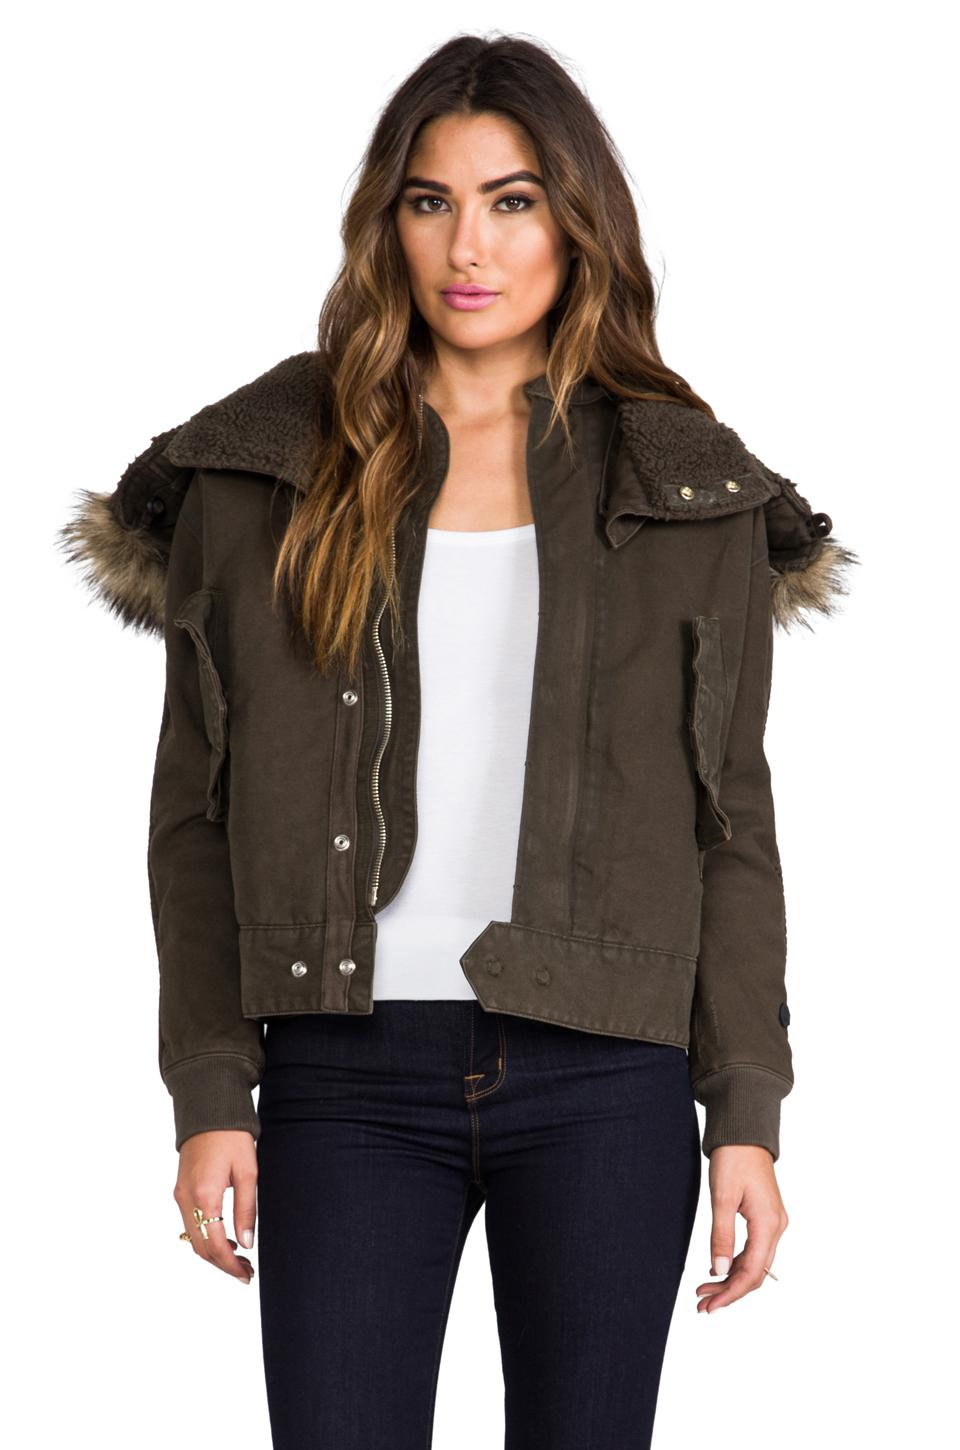 Military Jackets For Women